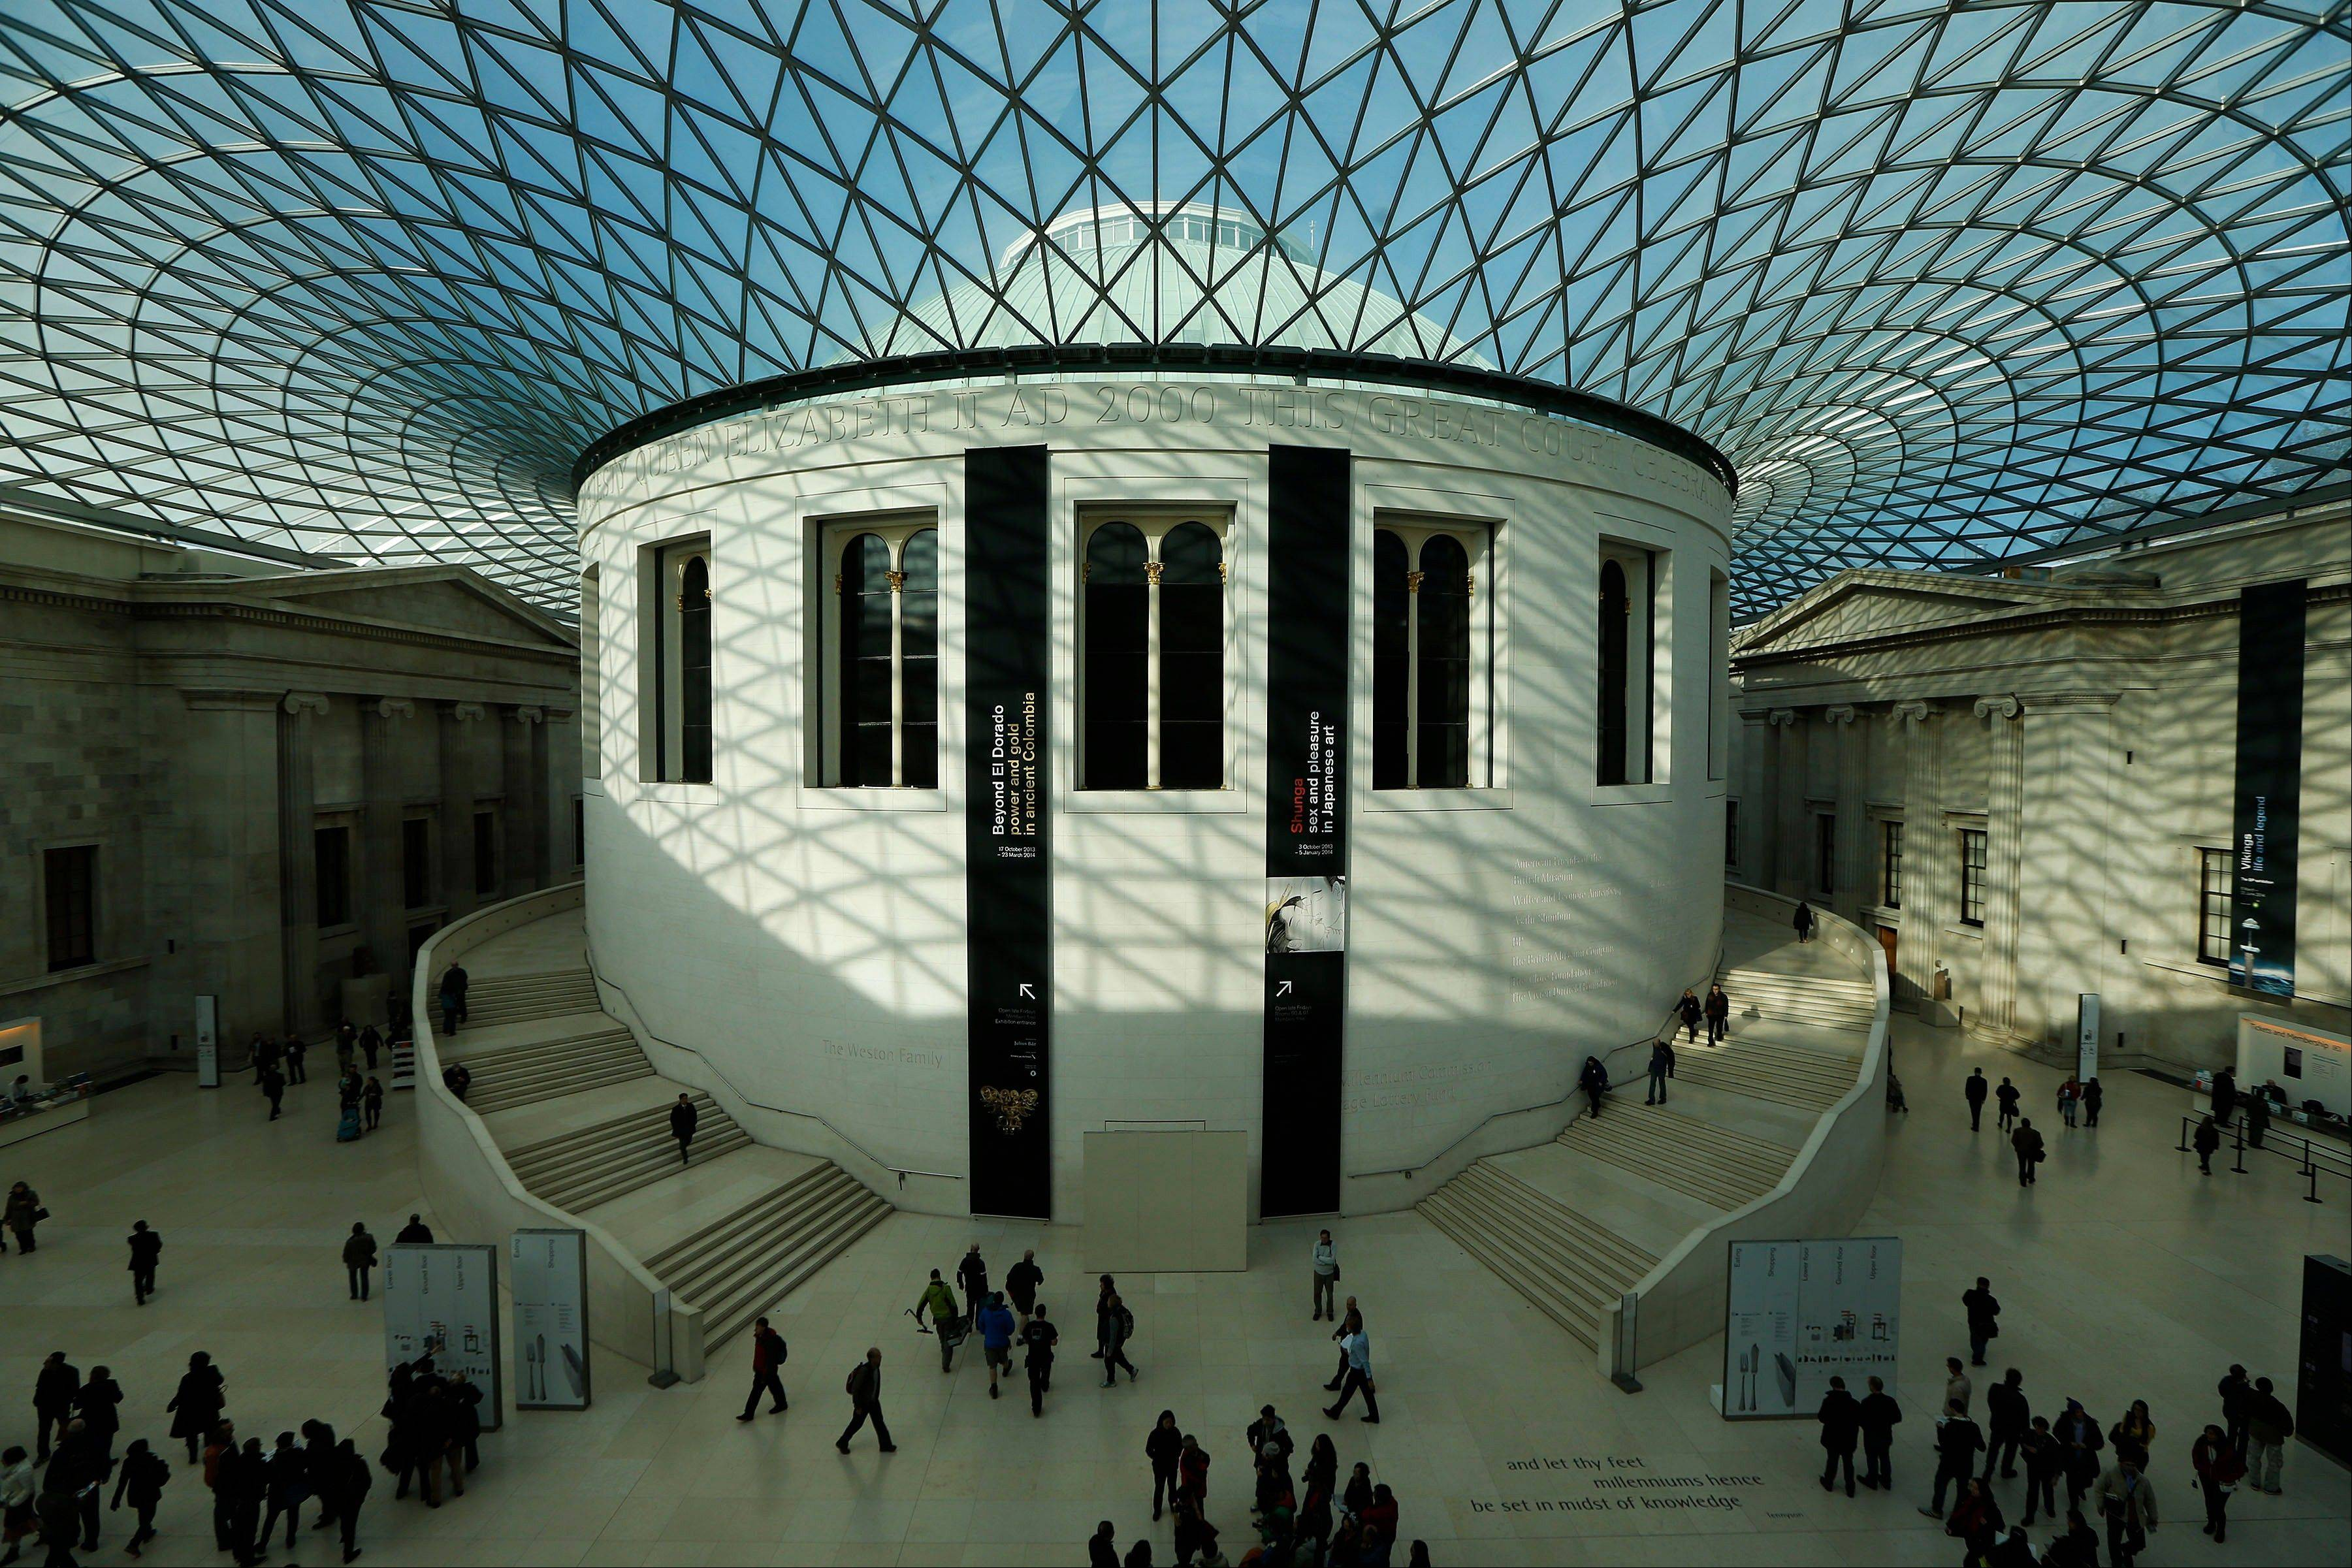 People visit the British Museum in London recently. The museum�s collection covers millennia of human culture, from ancient to modern times, and best of all, admission is free.